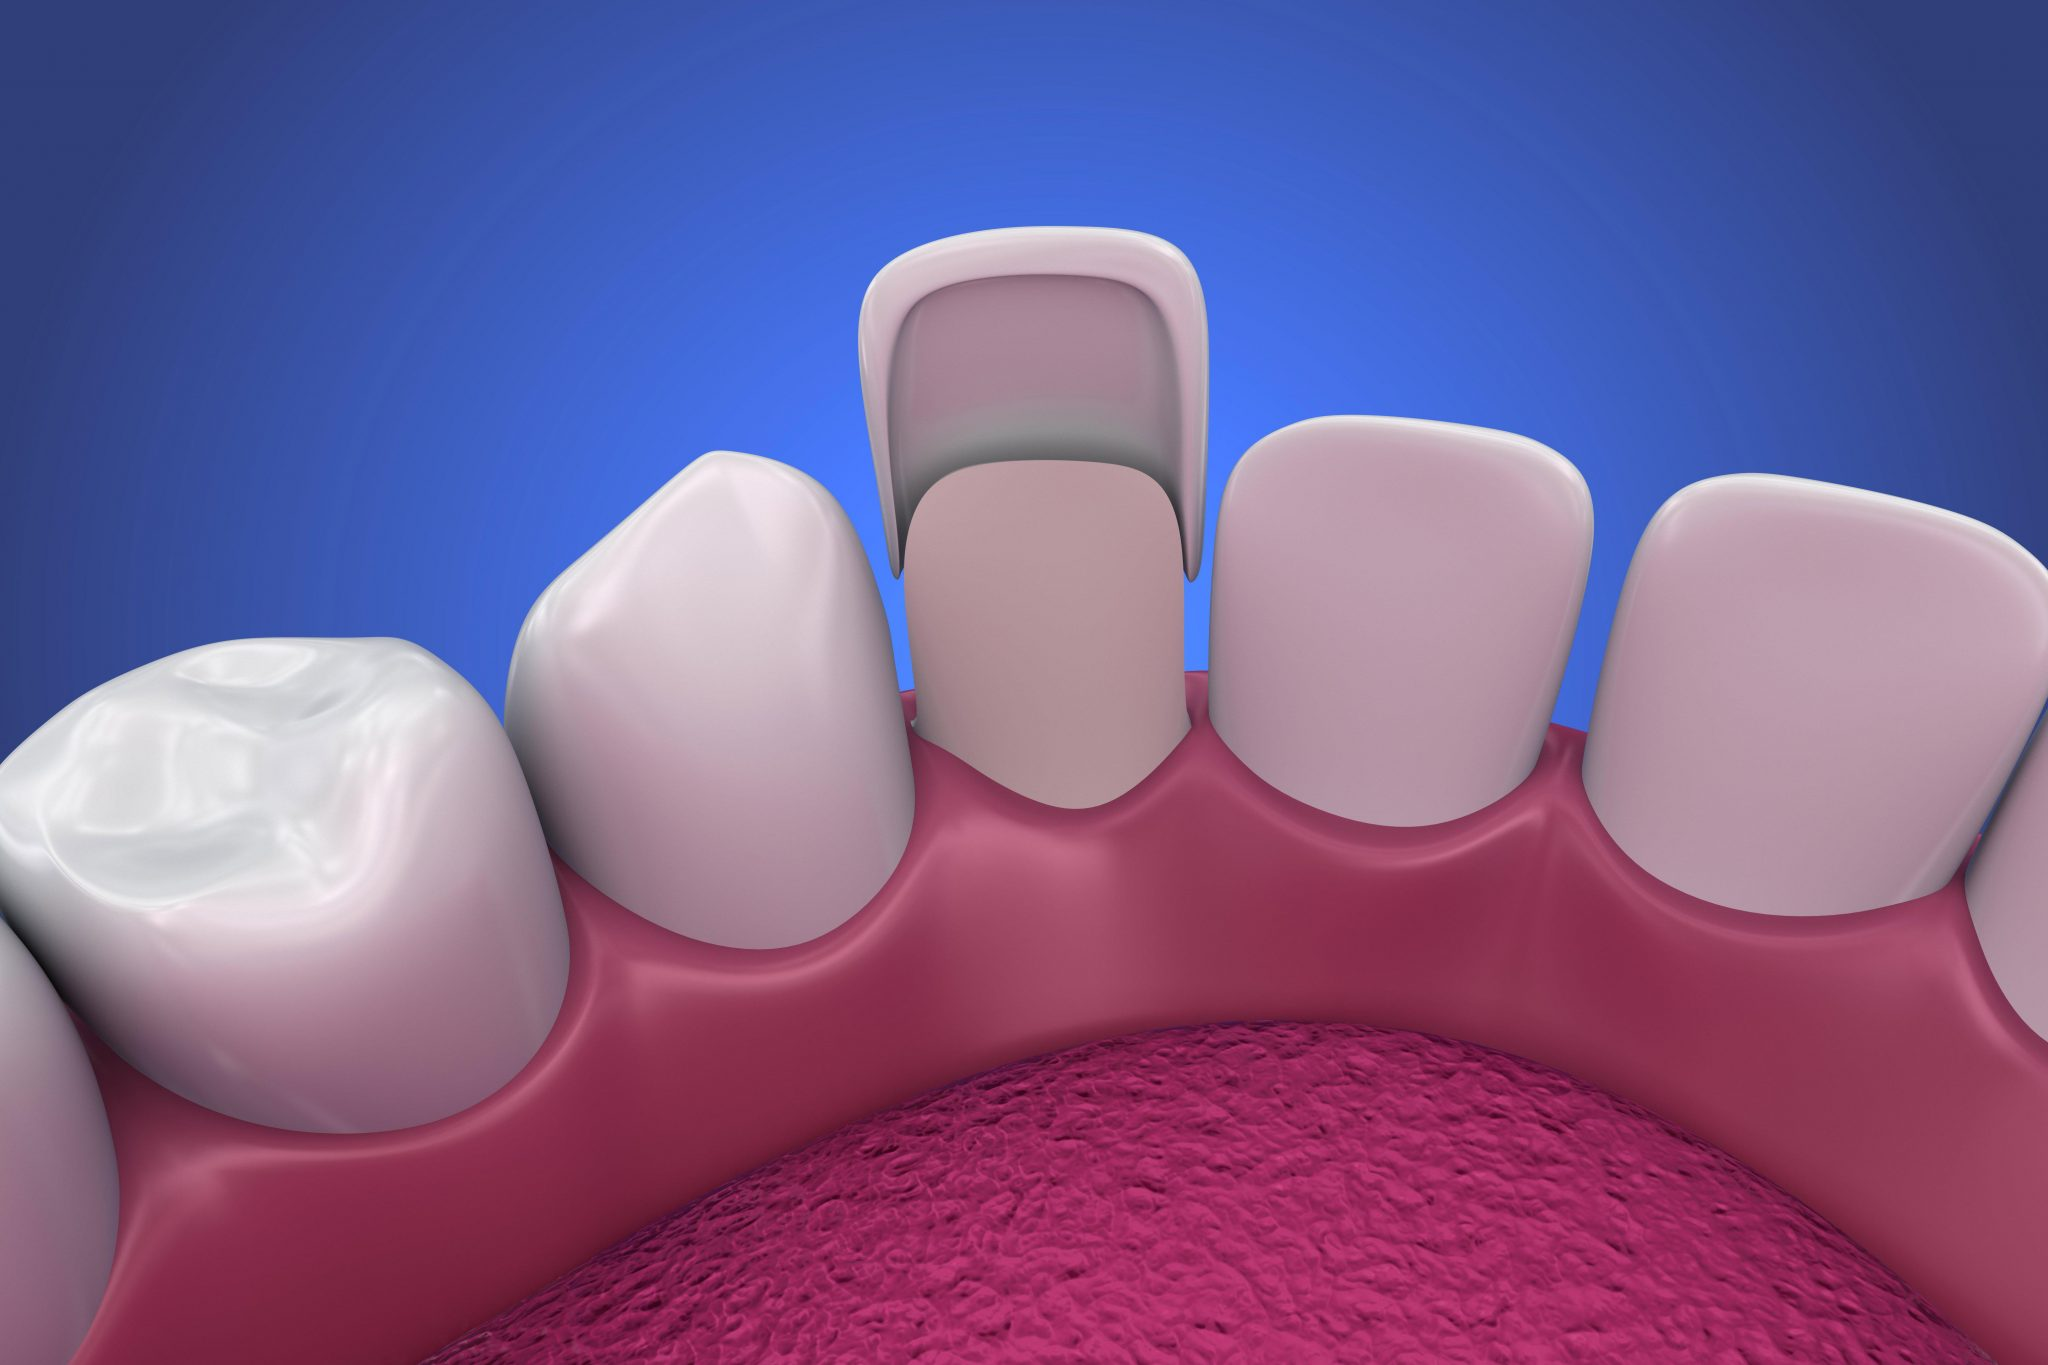 The porcelain veneer timeline: cosmetic dentistry is not a new thing, veneers have been around since 1920!